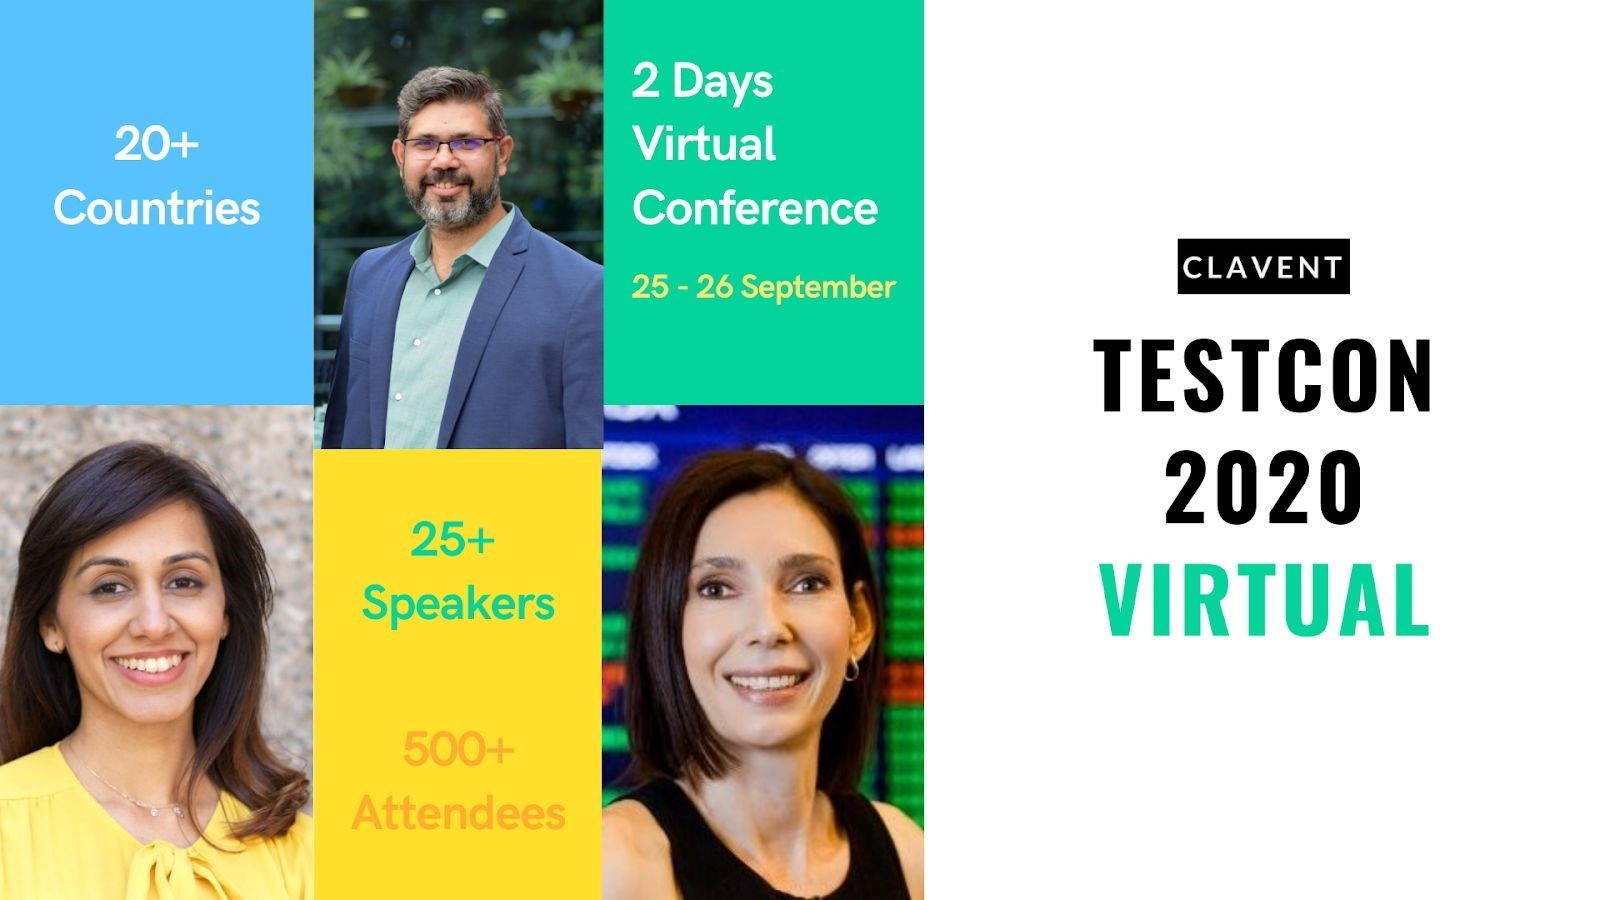 Clavent's Flagship Event TESTCON Goes Virtual in 2020!